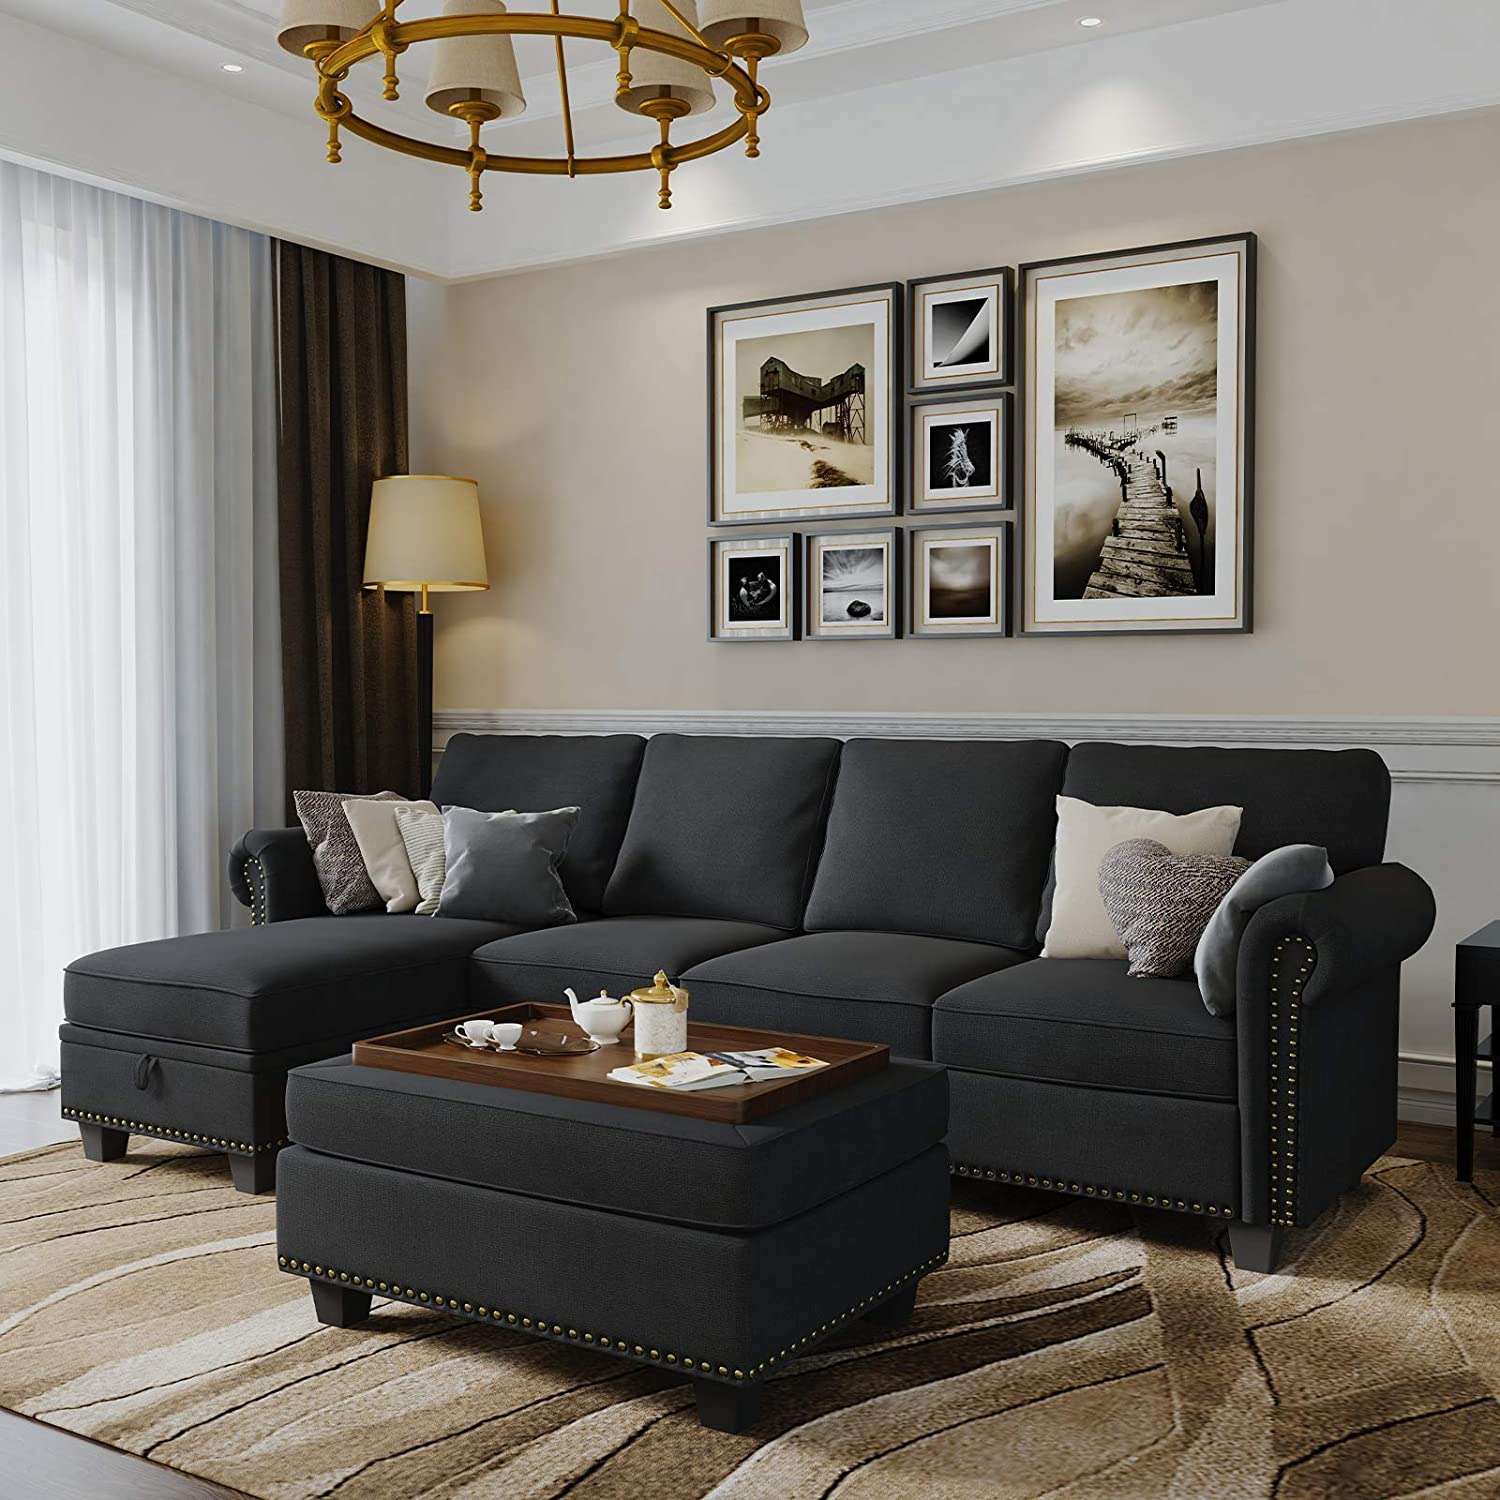 Best Multi-Functional: Nolany L-Shape 4 Seat Sofa With Much Storage.